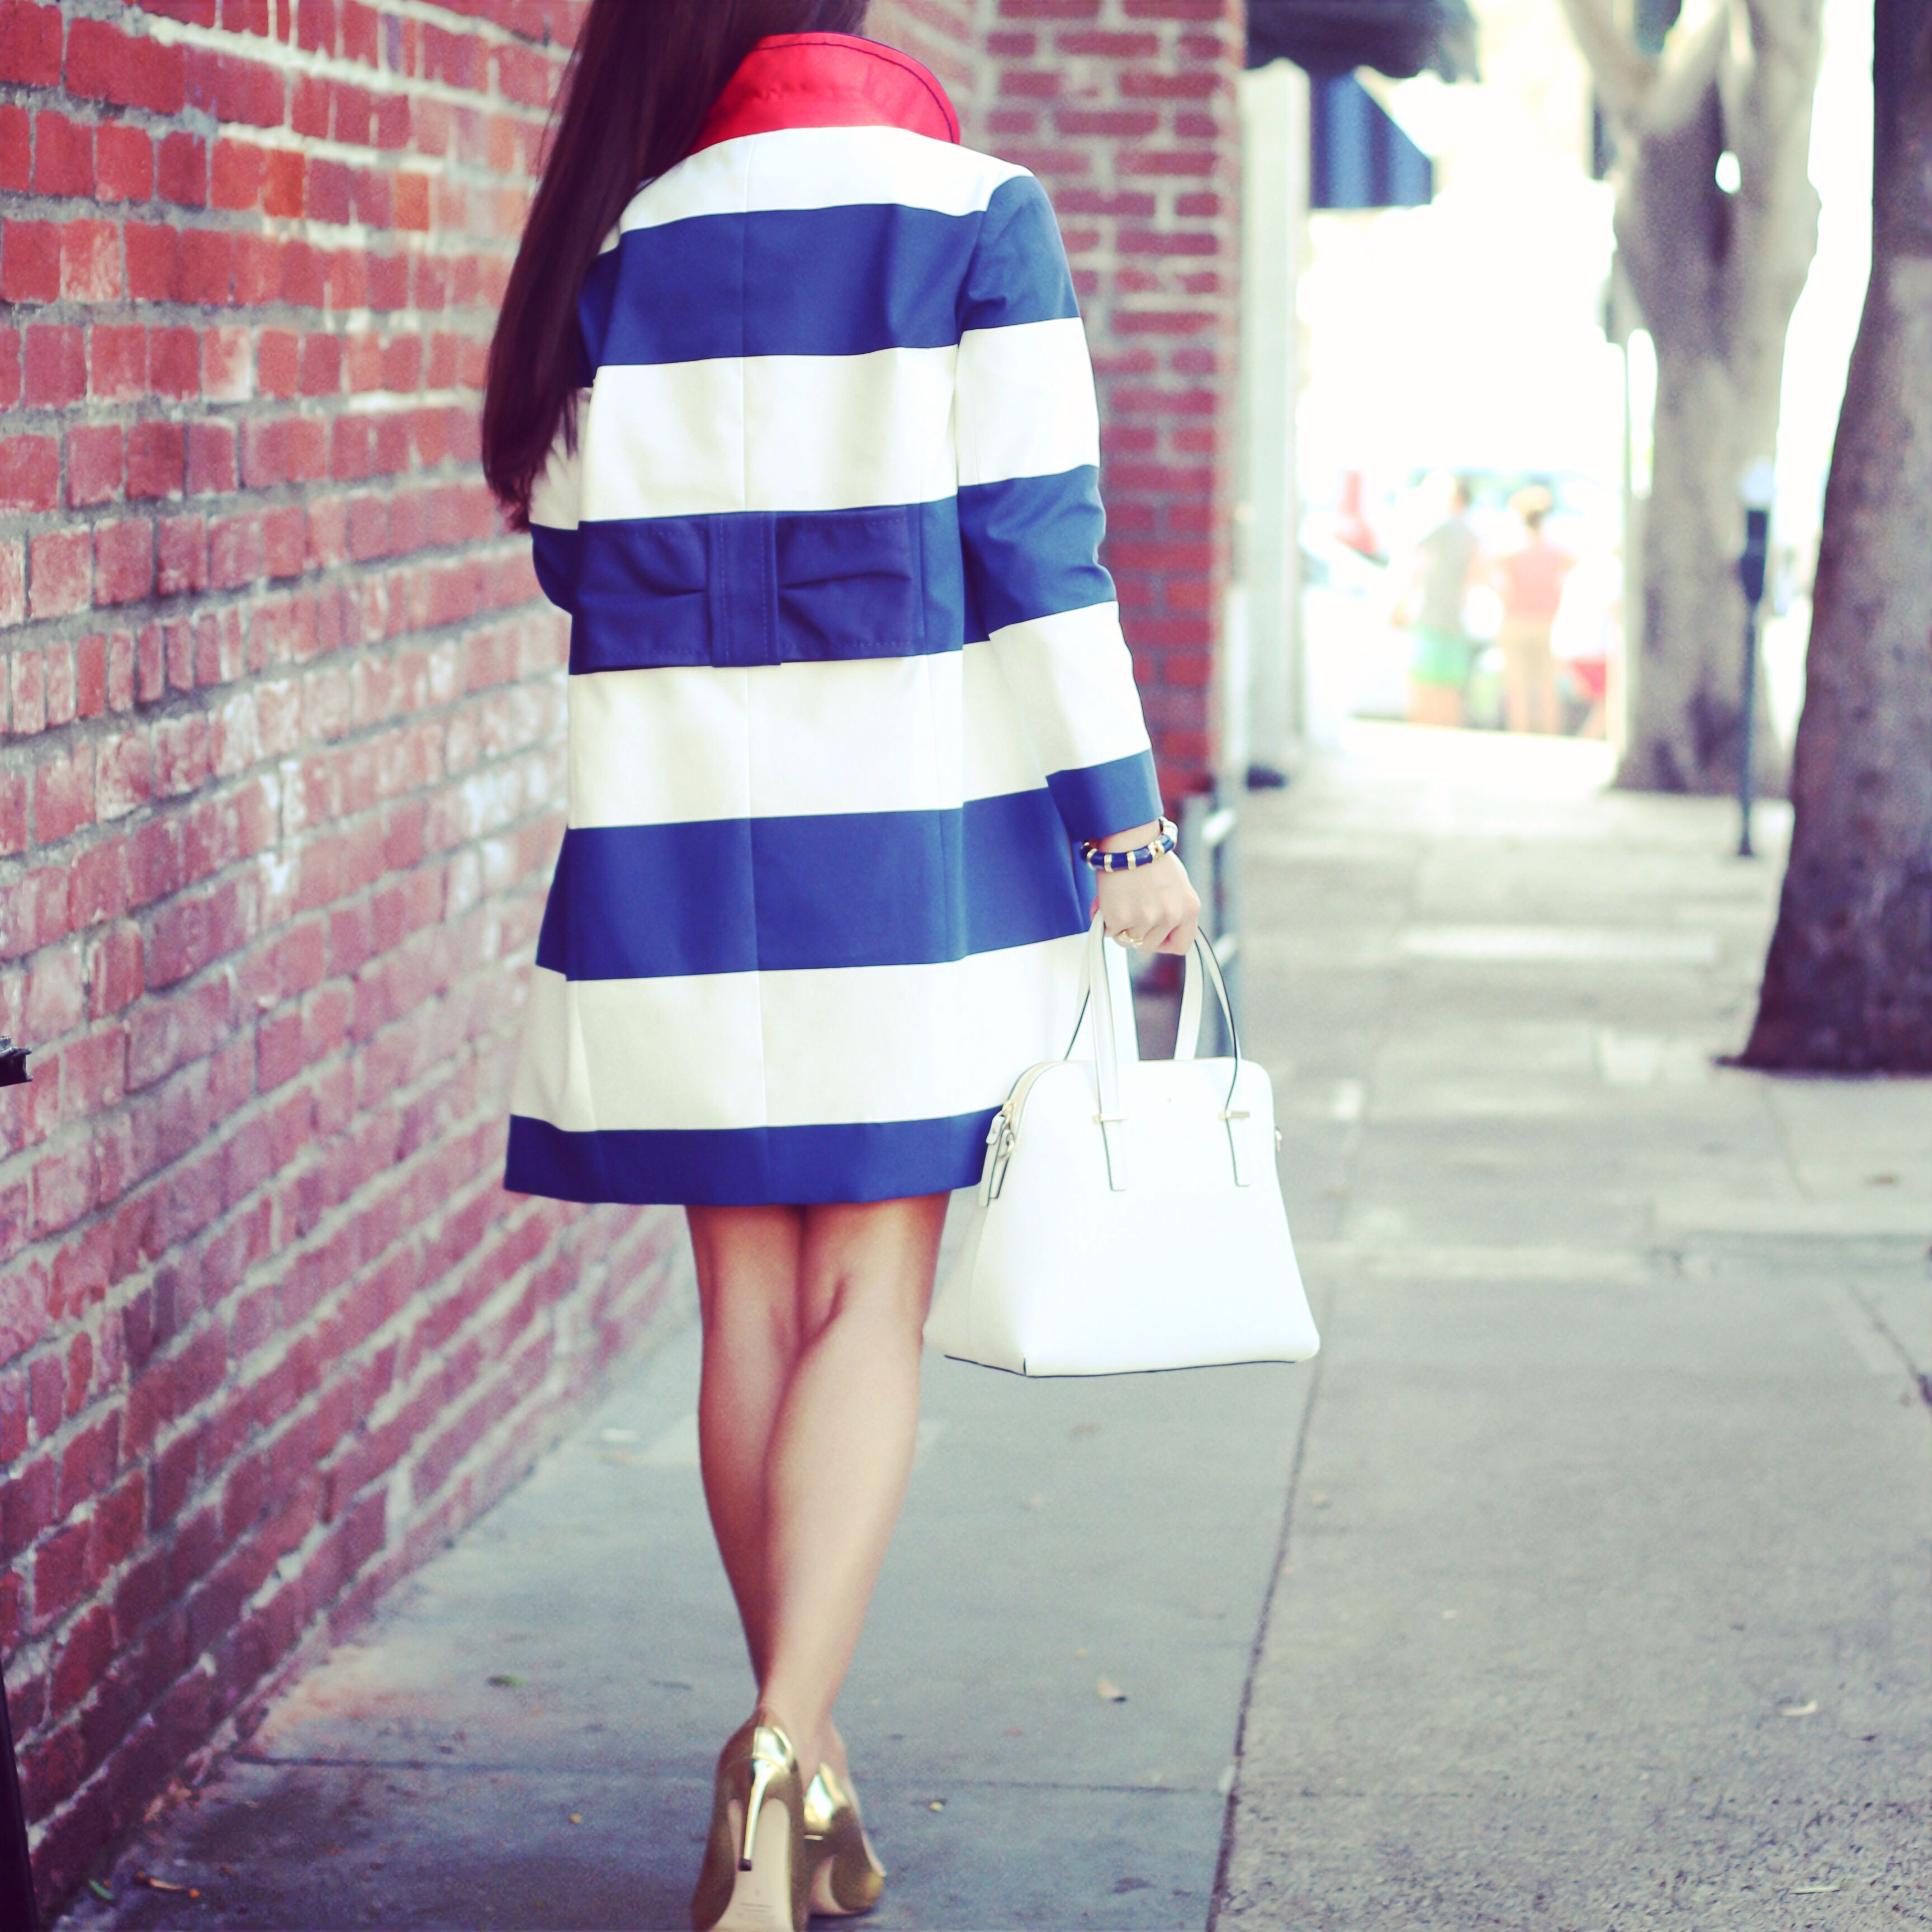 Stripes and bows- Kate Spade Franny coat with bow back